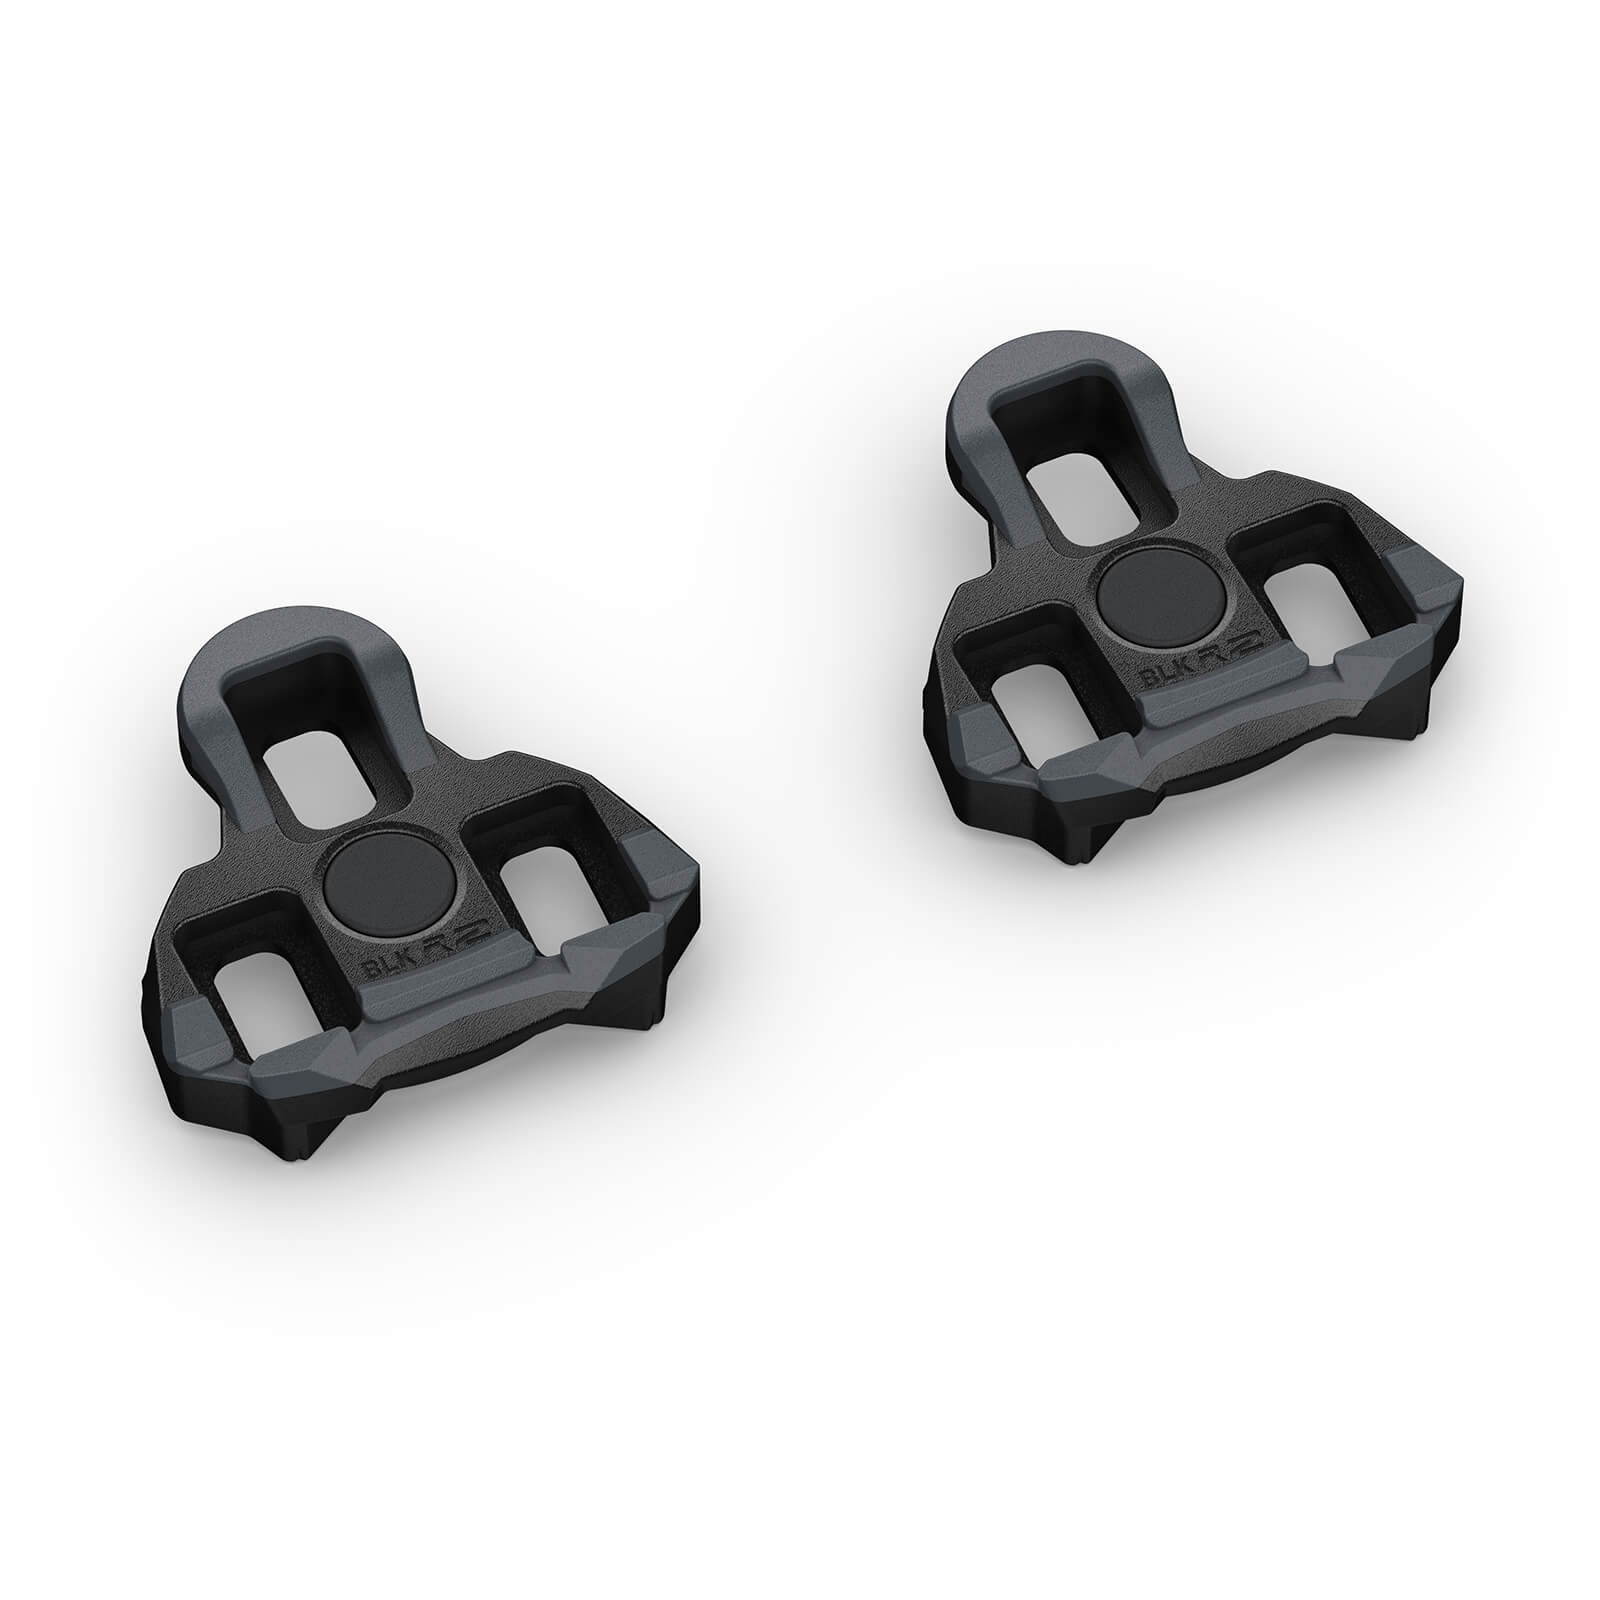 Garmin Rally RK Replacement Cleats - 0 degree